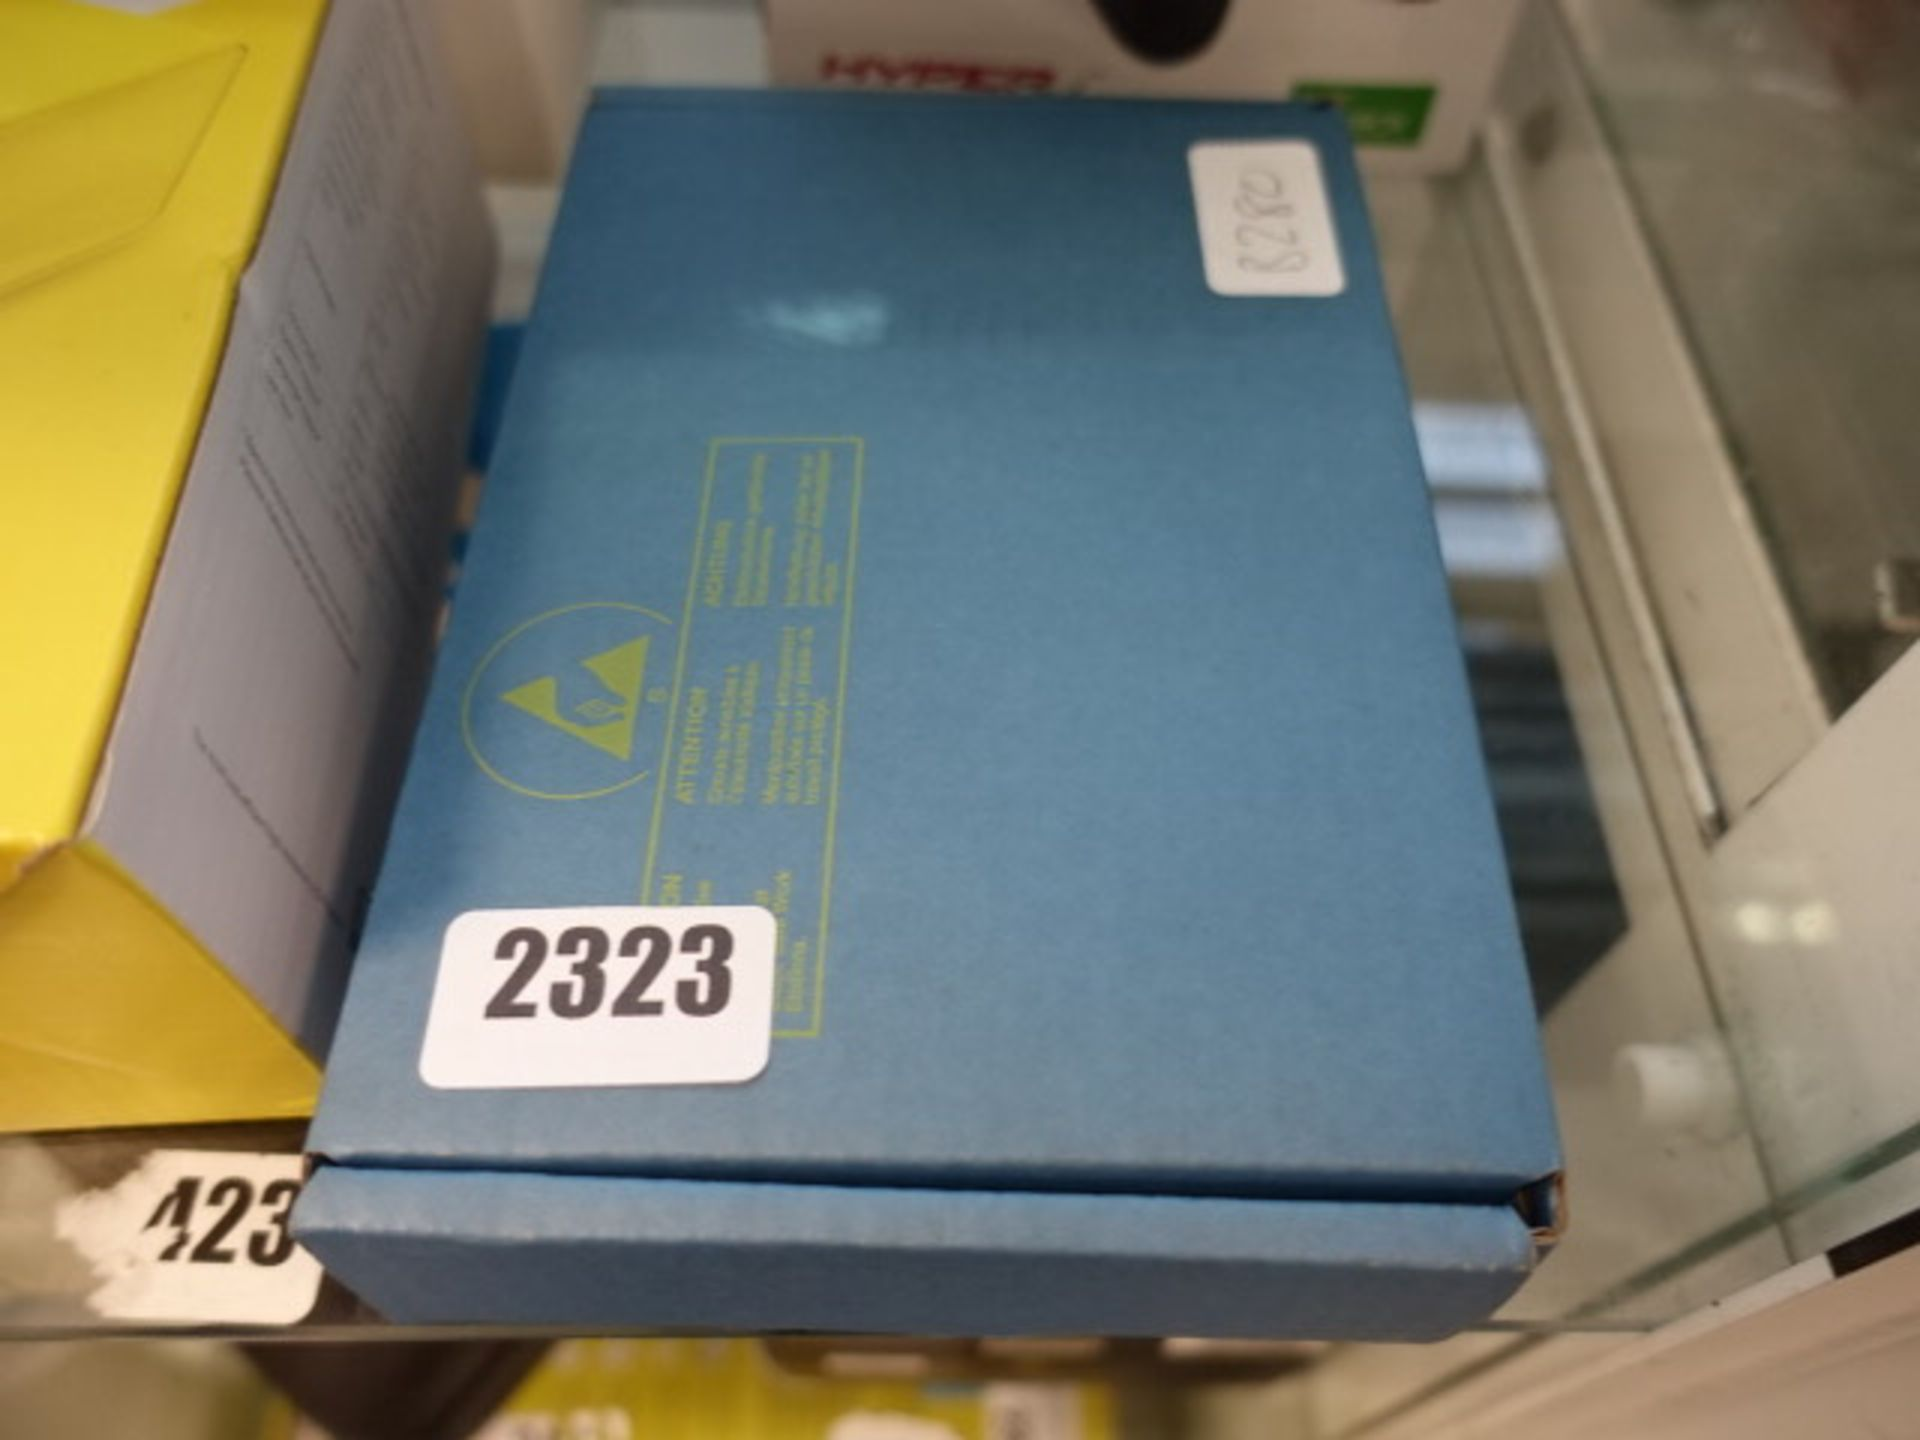 Lot 2323 - PCBA cover right for 7 series units in carboard box